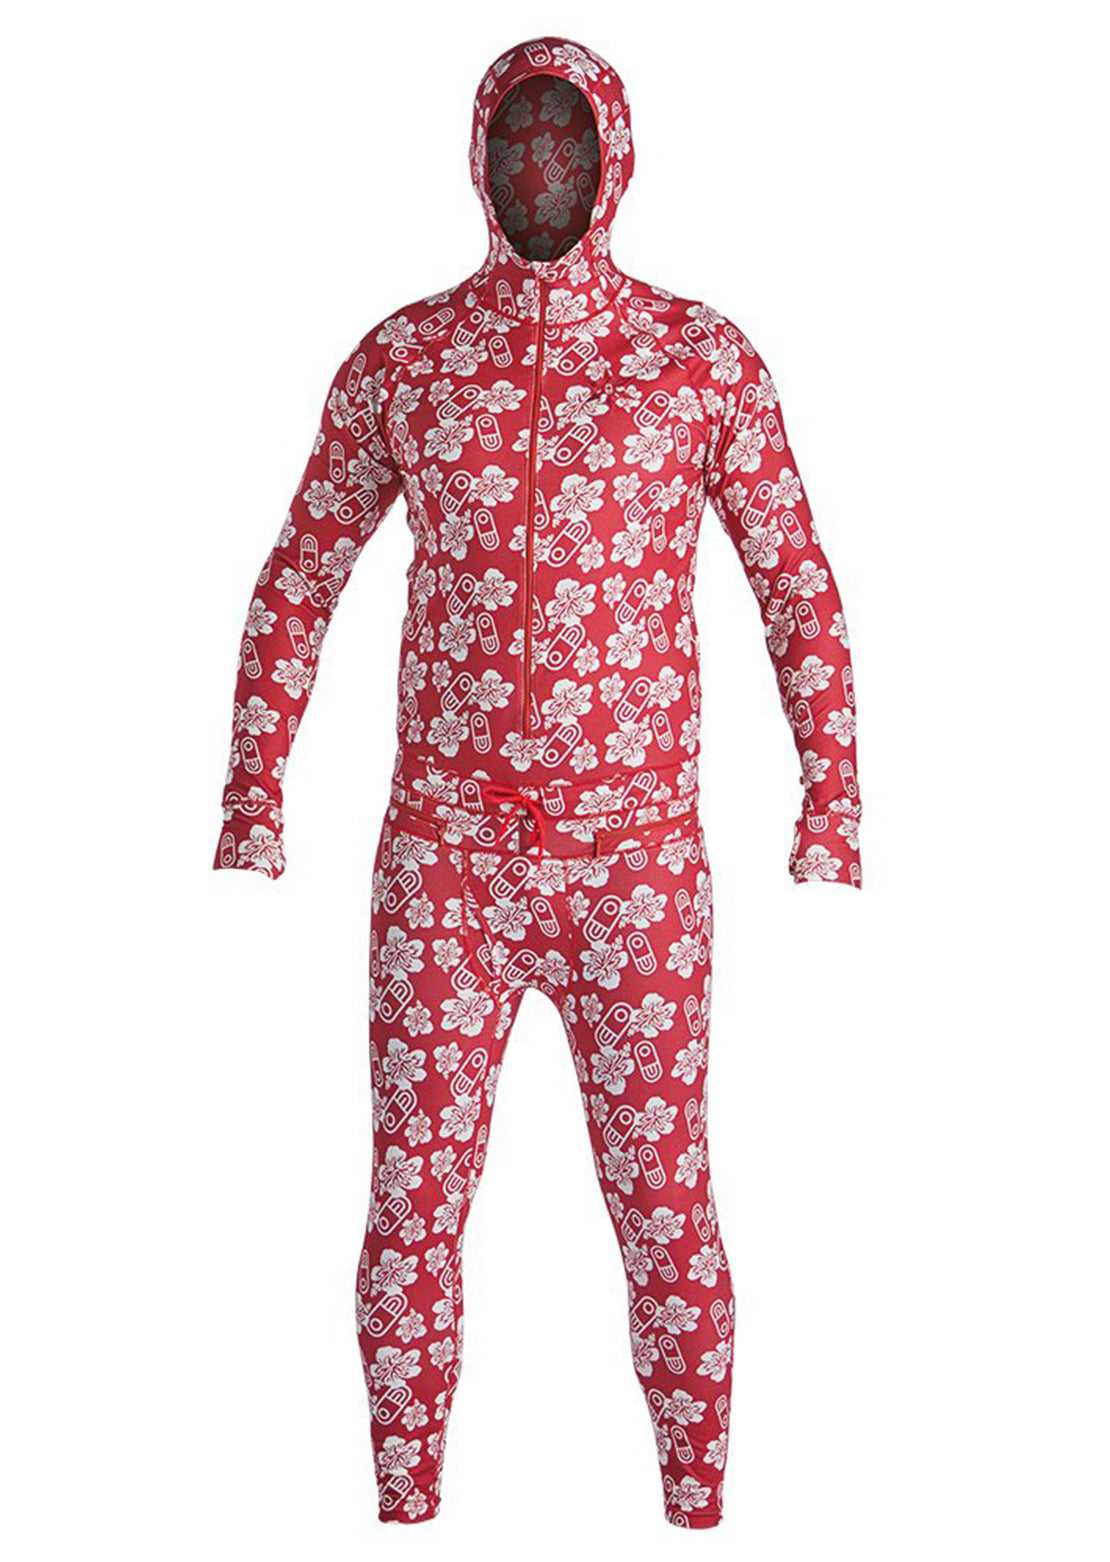 Airblaster Men's Classic Ninja Suit First Layer Terry Bahama